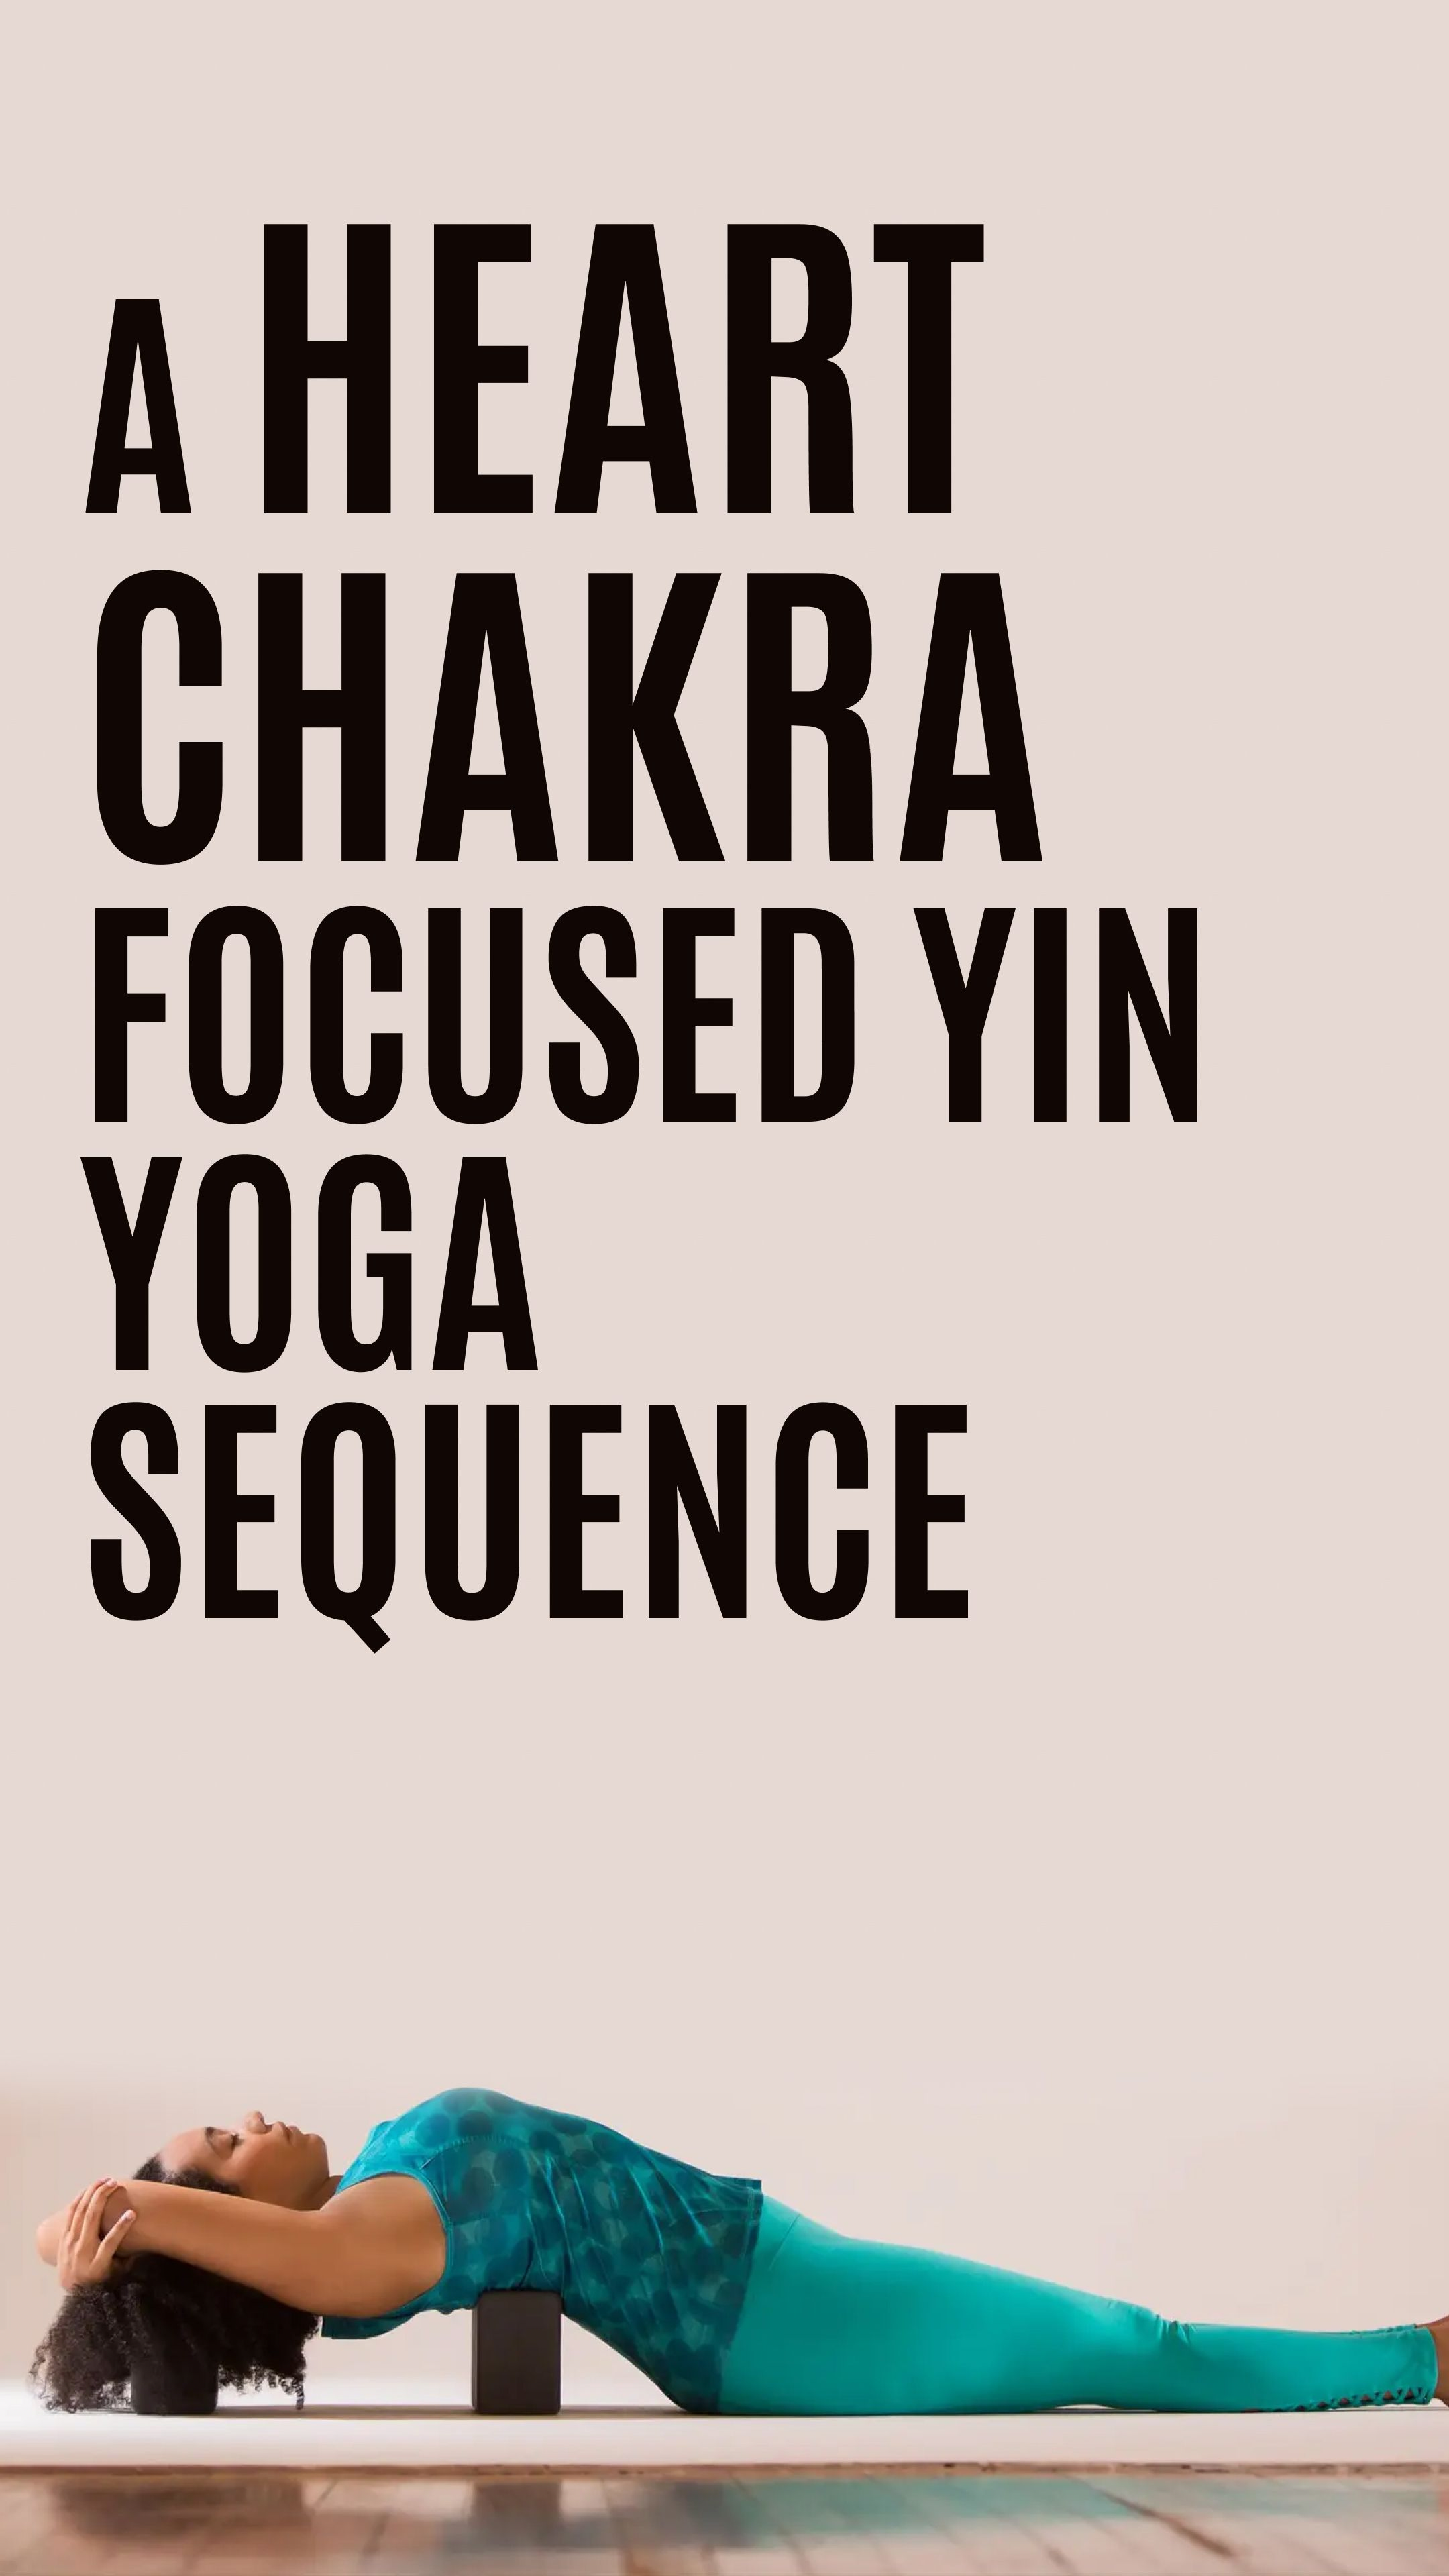 A Heart Chakra Focused Yin Yoga Sequence In 2020 Yin Yoga Sequence Yin Yoga Restorative Yin Yoga